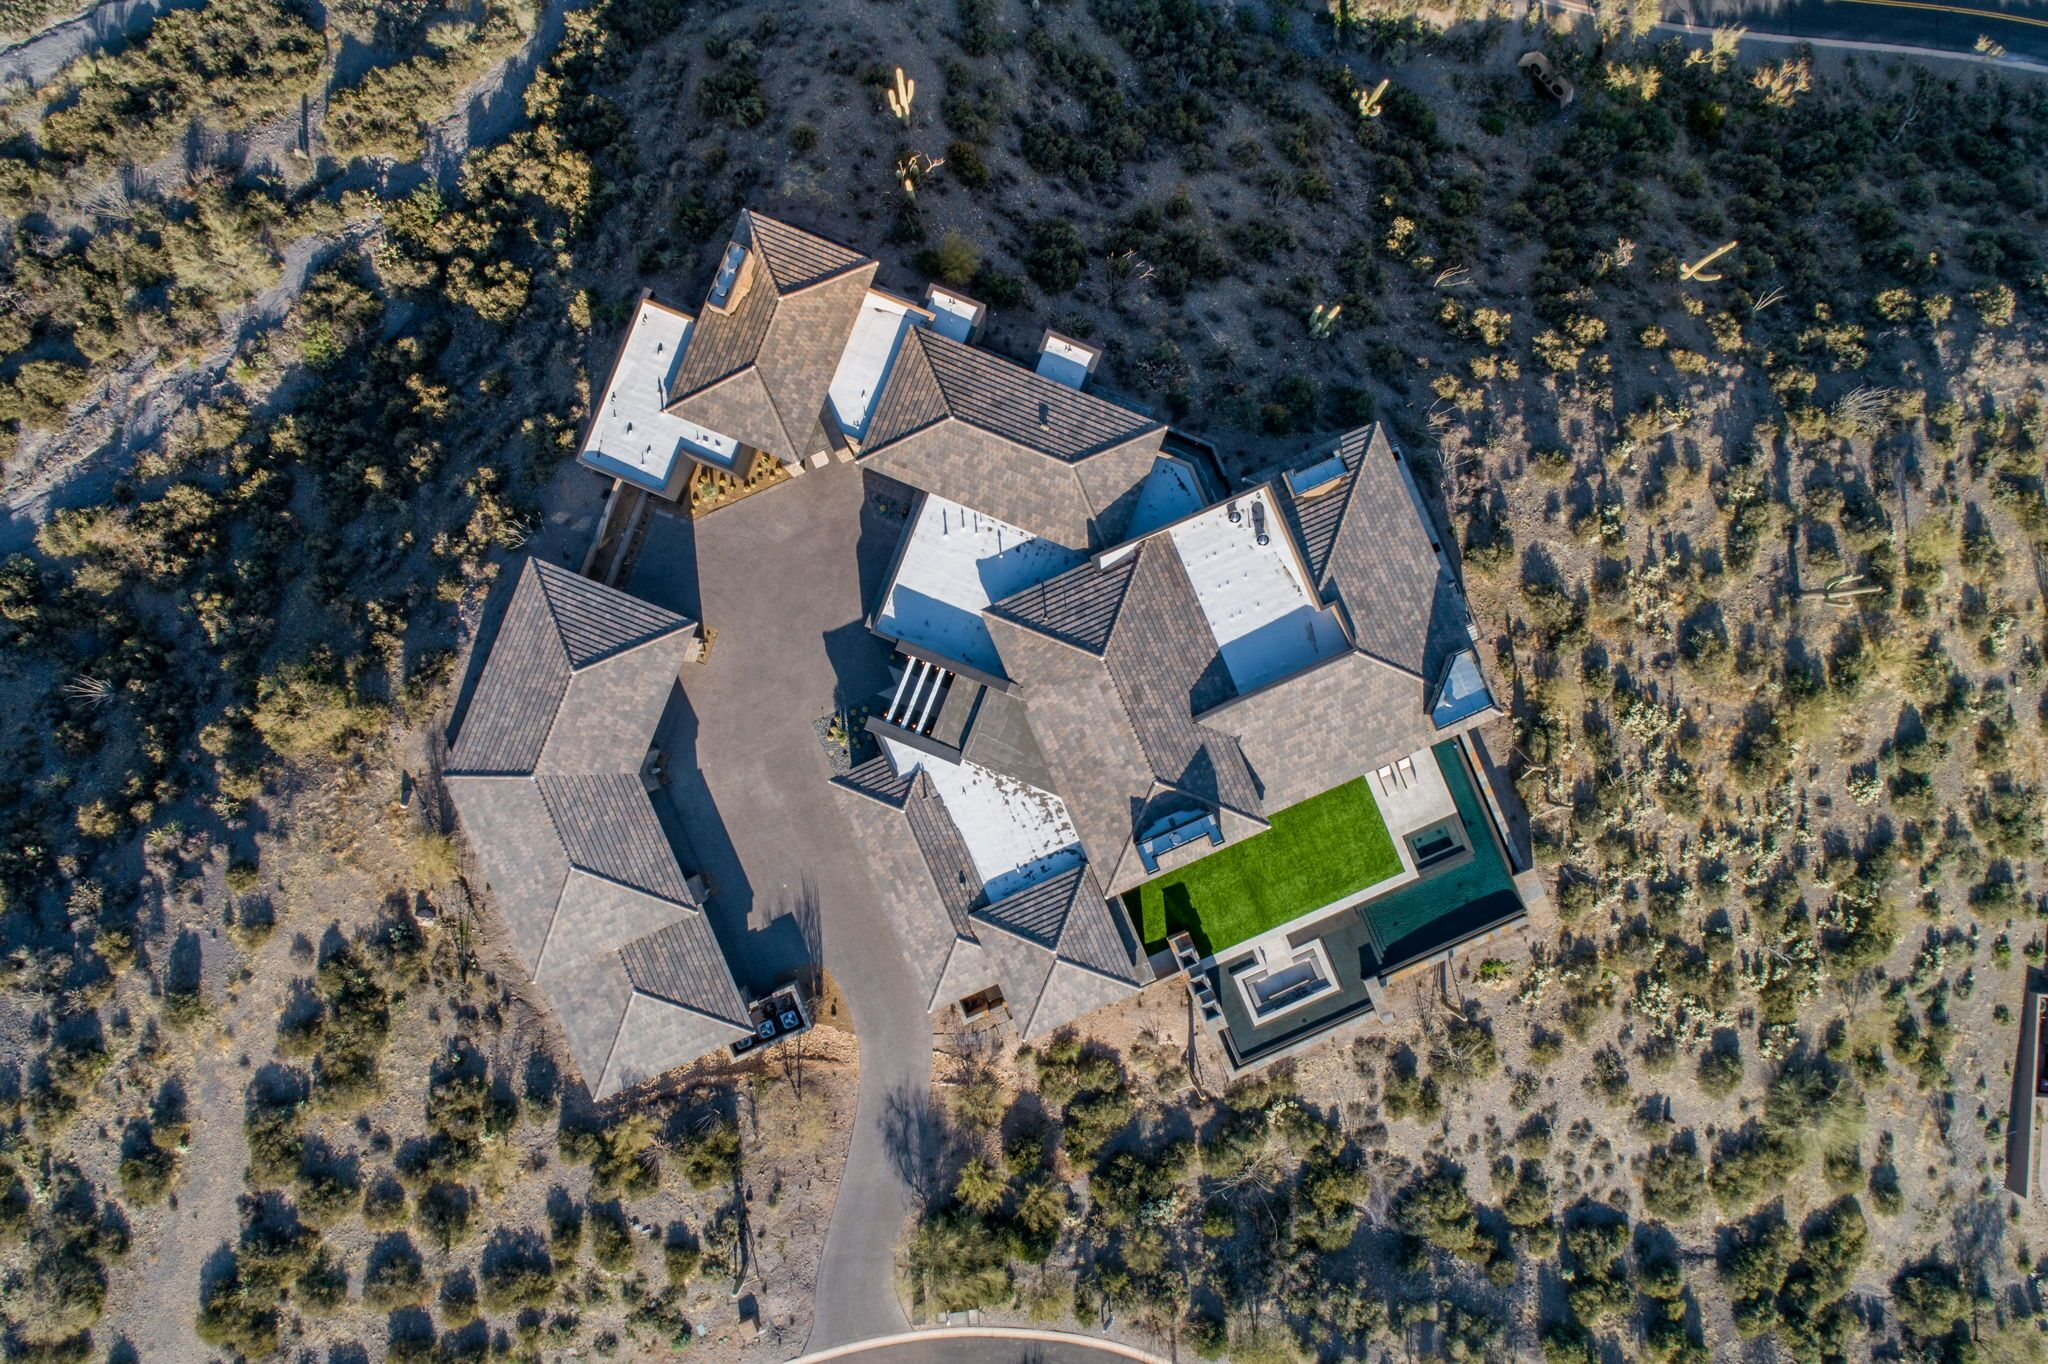 9300+E+Grapevine+Pass+Scottsdale-58-WebQuality-Birdseye+Views.jpg